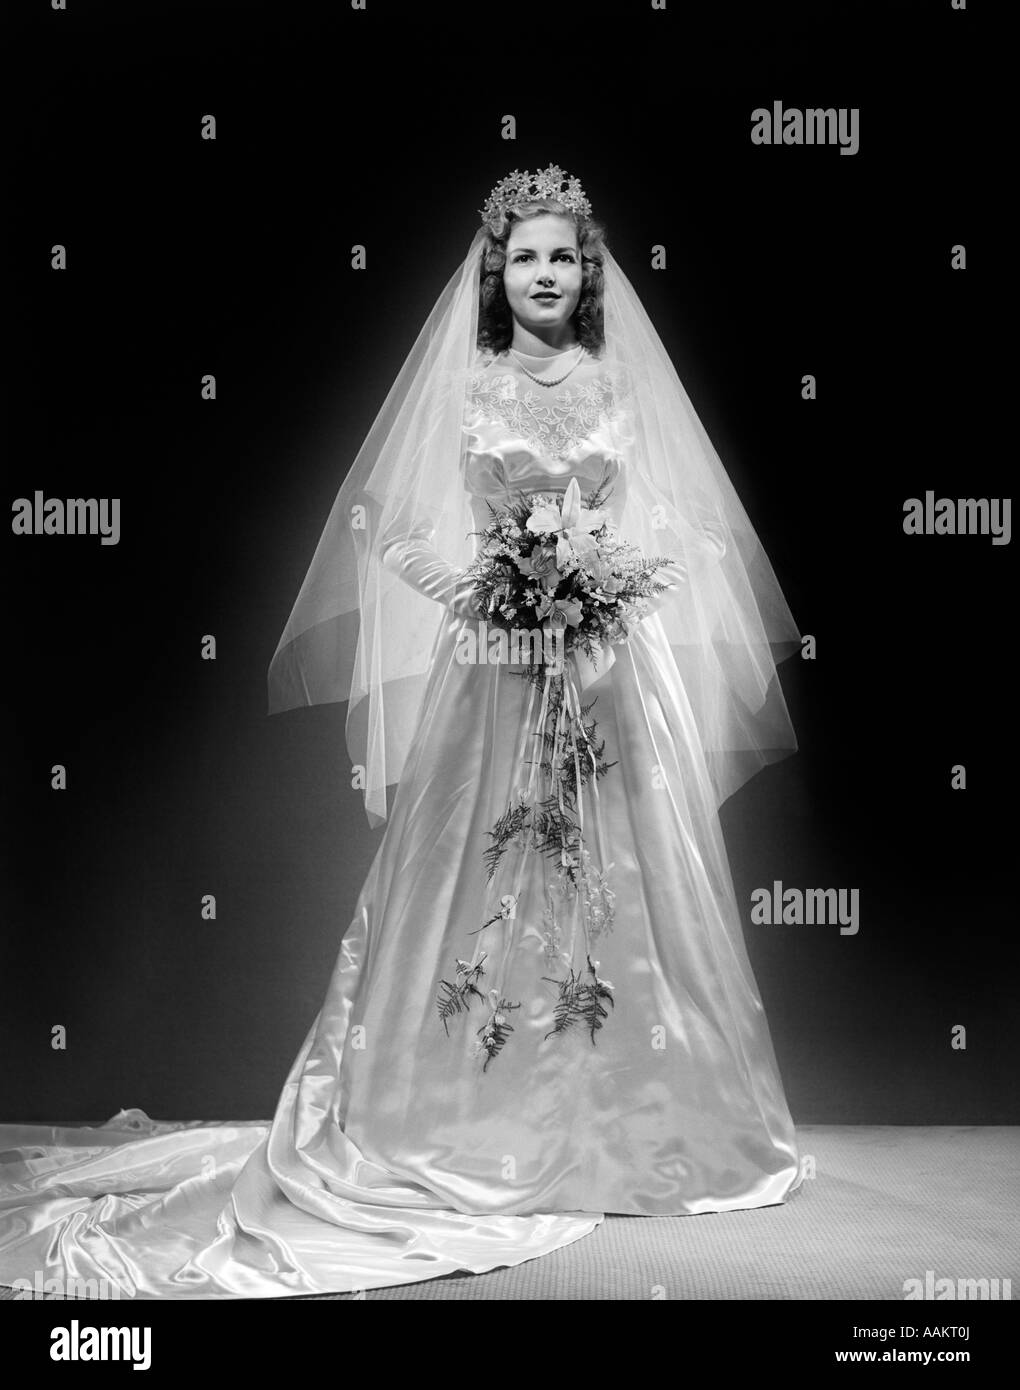 1940s FULL LENGTH PORTRAIT OF BRIDE IN WEDDING DRESS LOOKING AT CAMERA Stock Photo